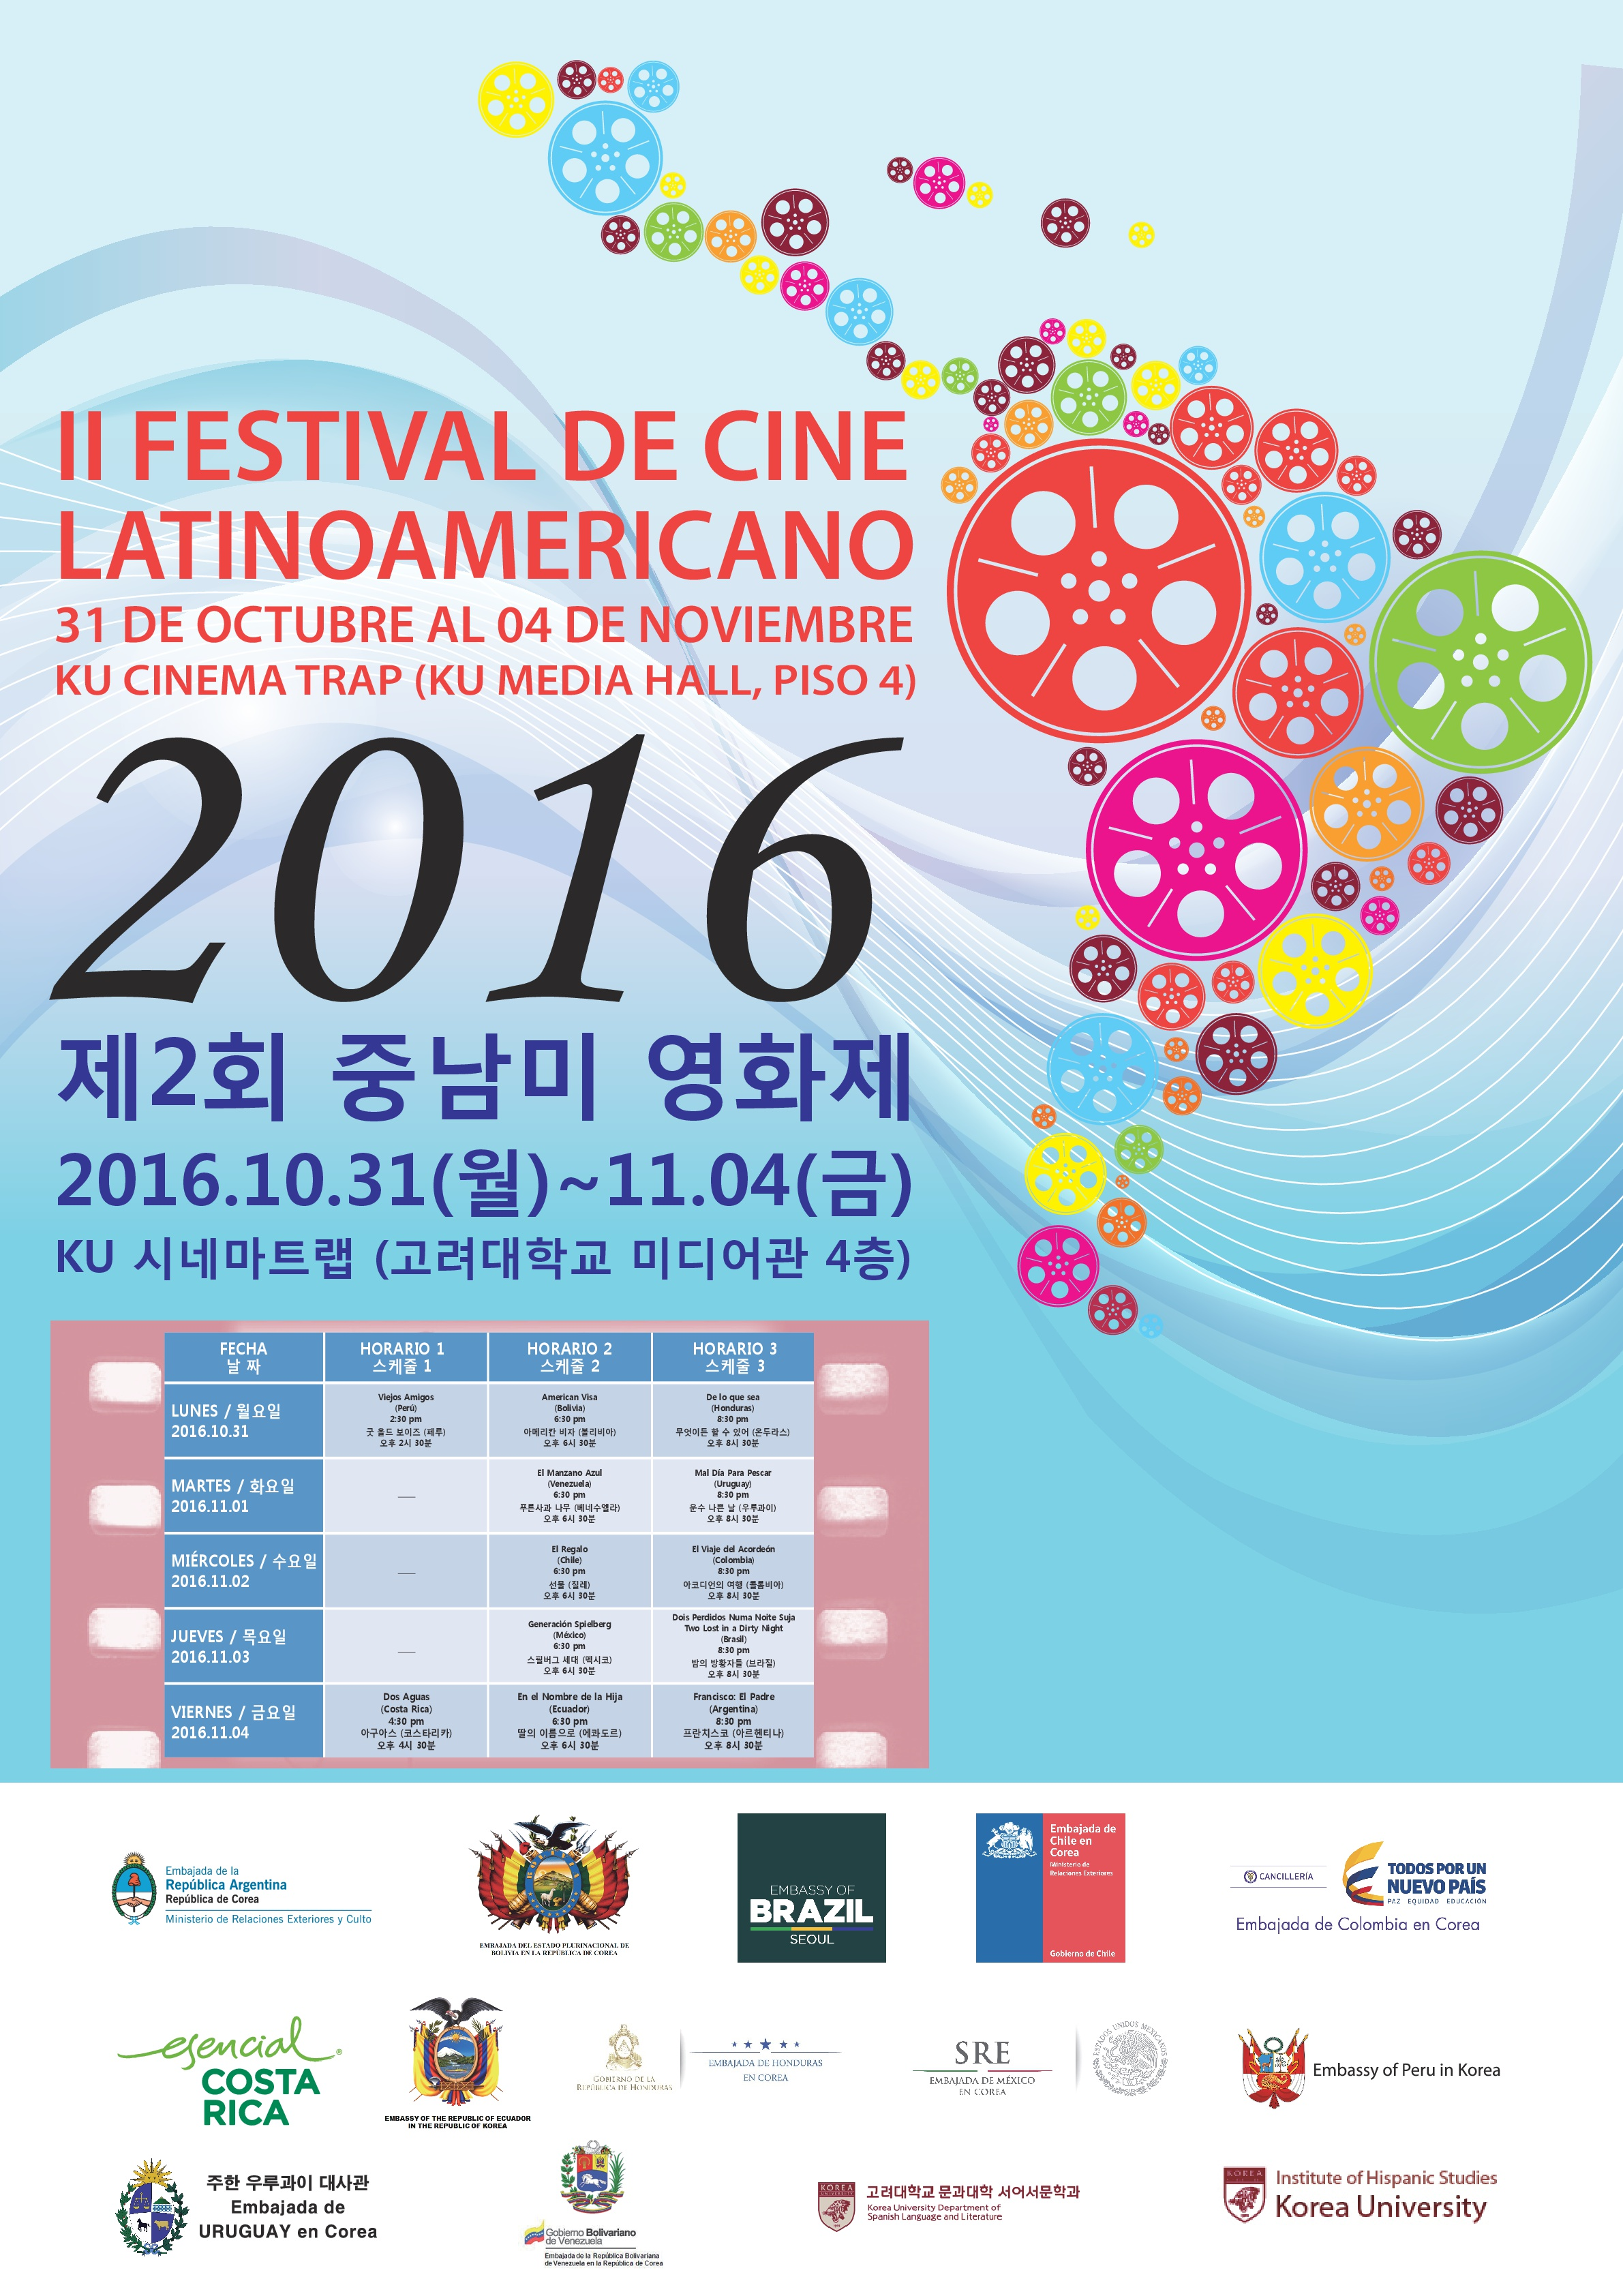 The 2nd Latin American Film Festival will be held at K.U. Cinema Trap in Seoul from Oct. 31 to Nov. 4, 2016, under the joint organization of the 12 embassies of Latin American countries.